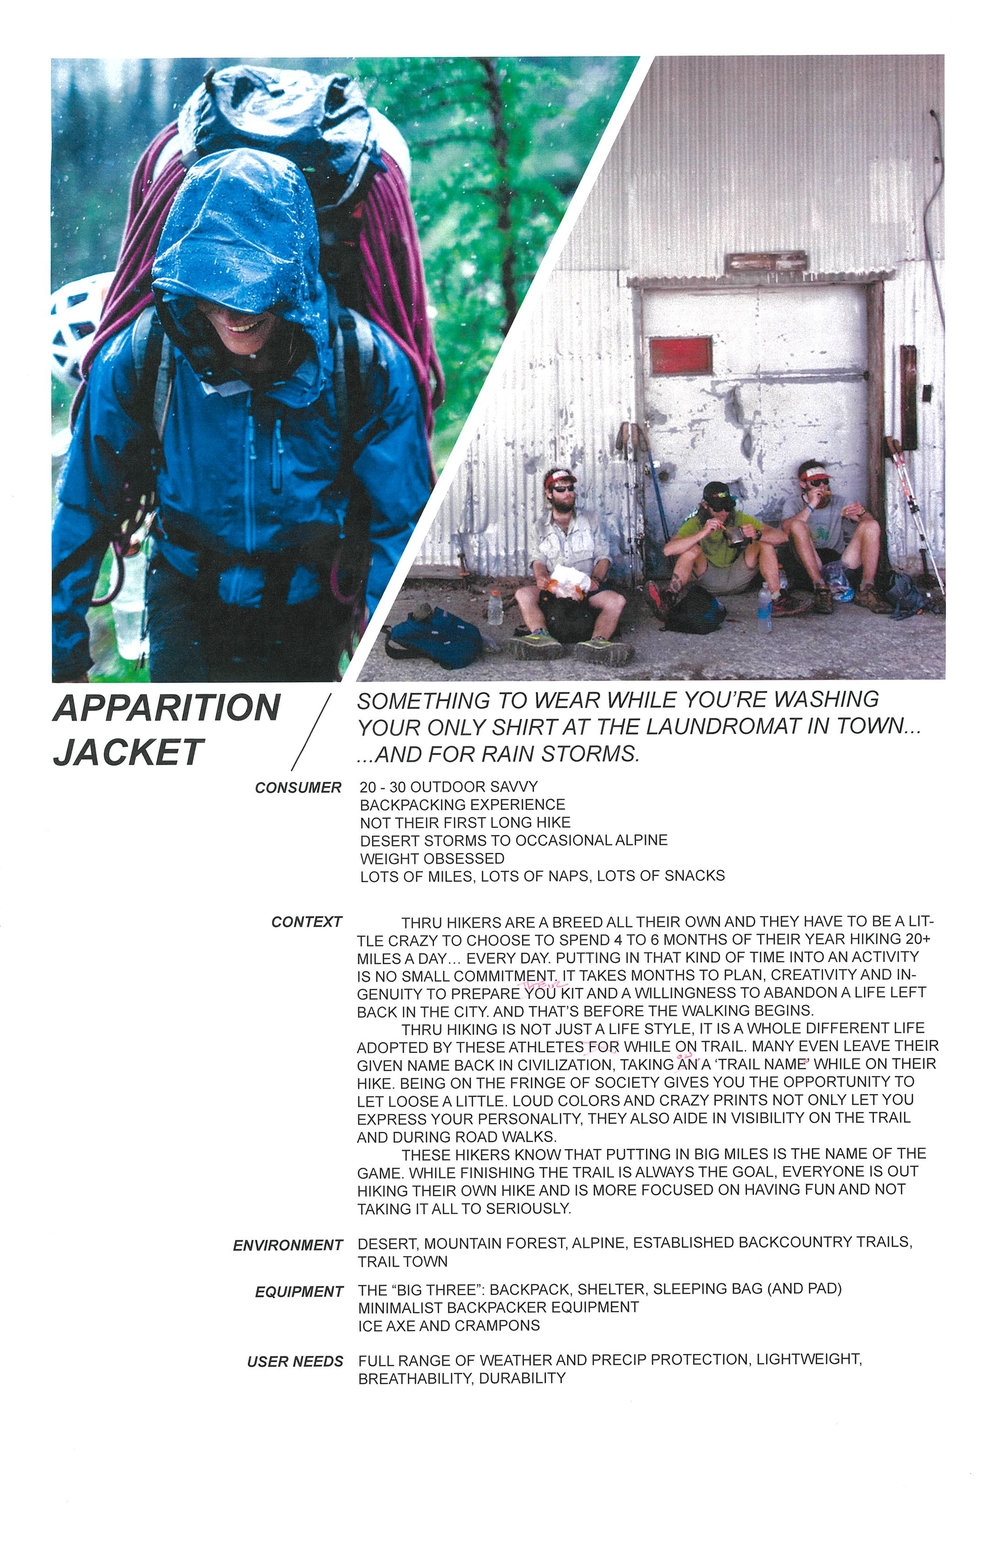 2019.02.11 - AparationJacketSlide.jpg